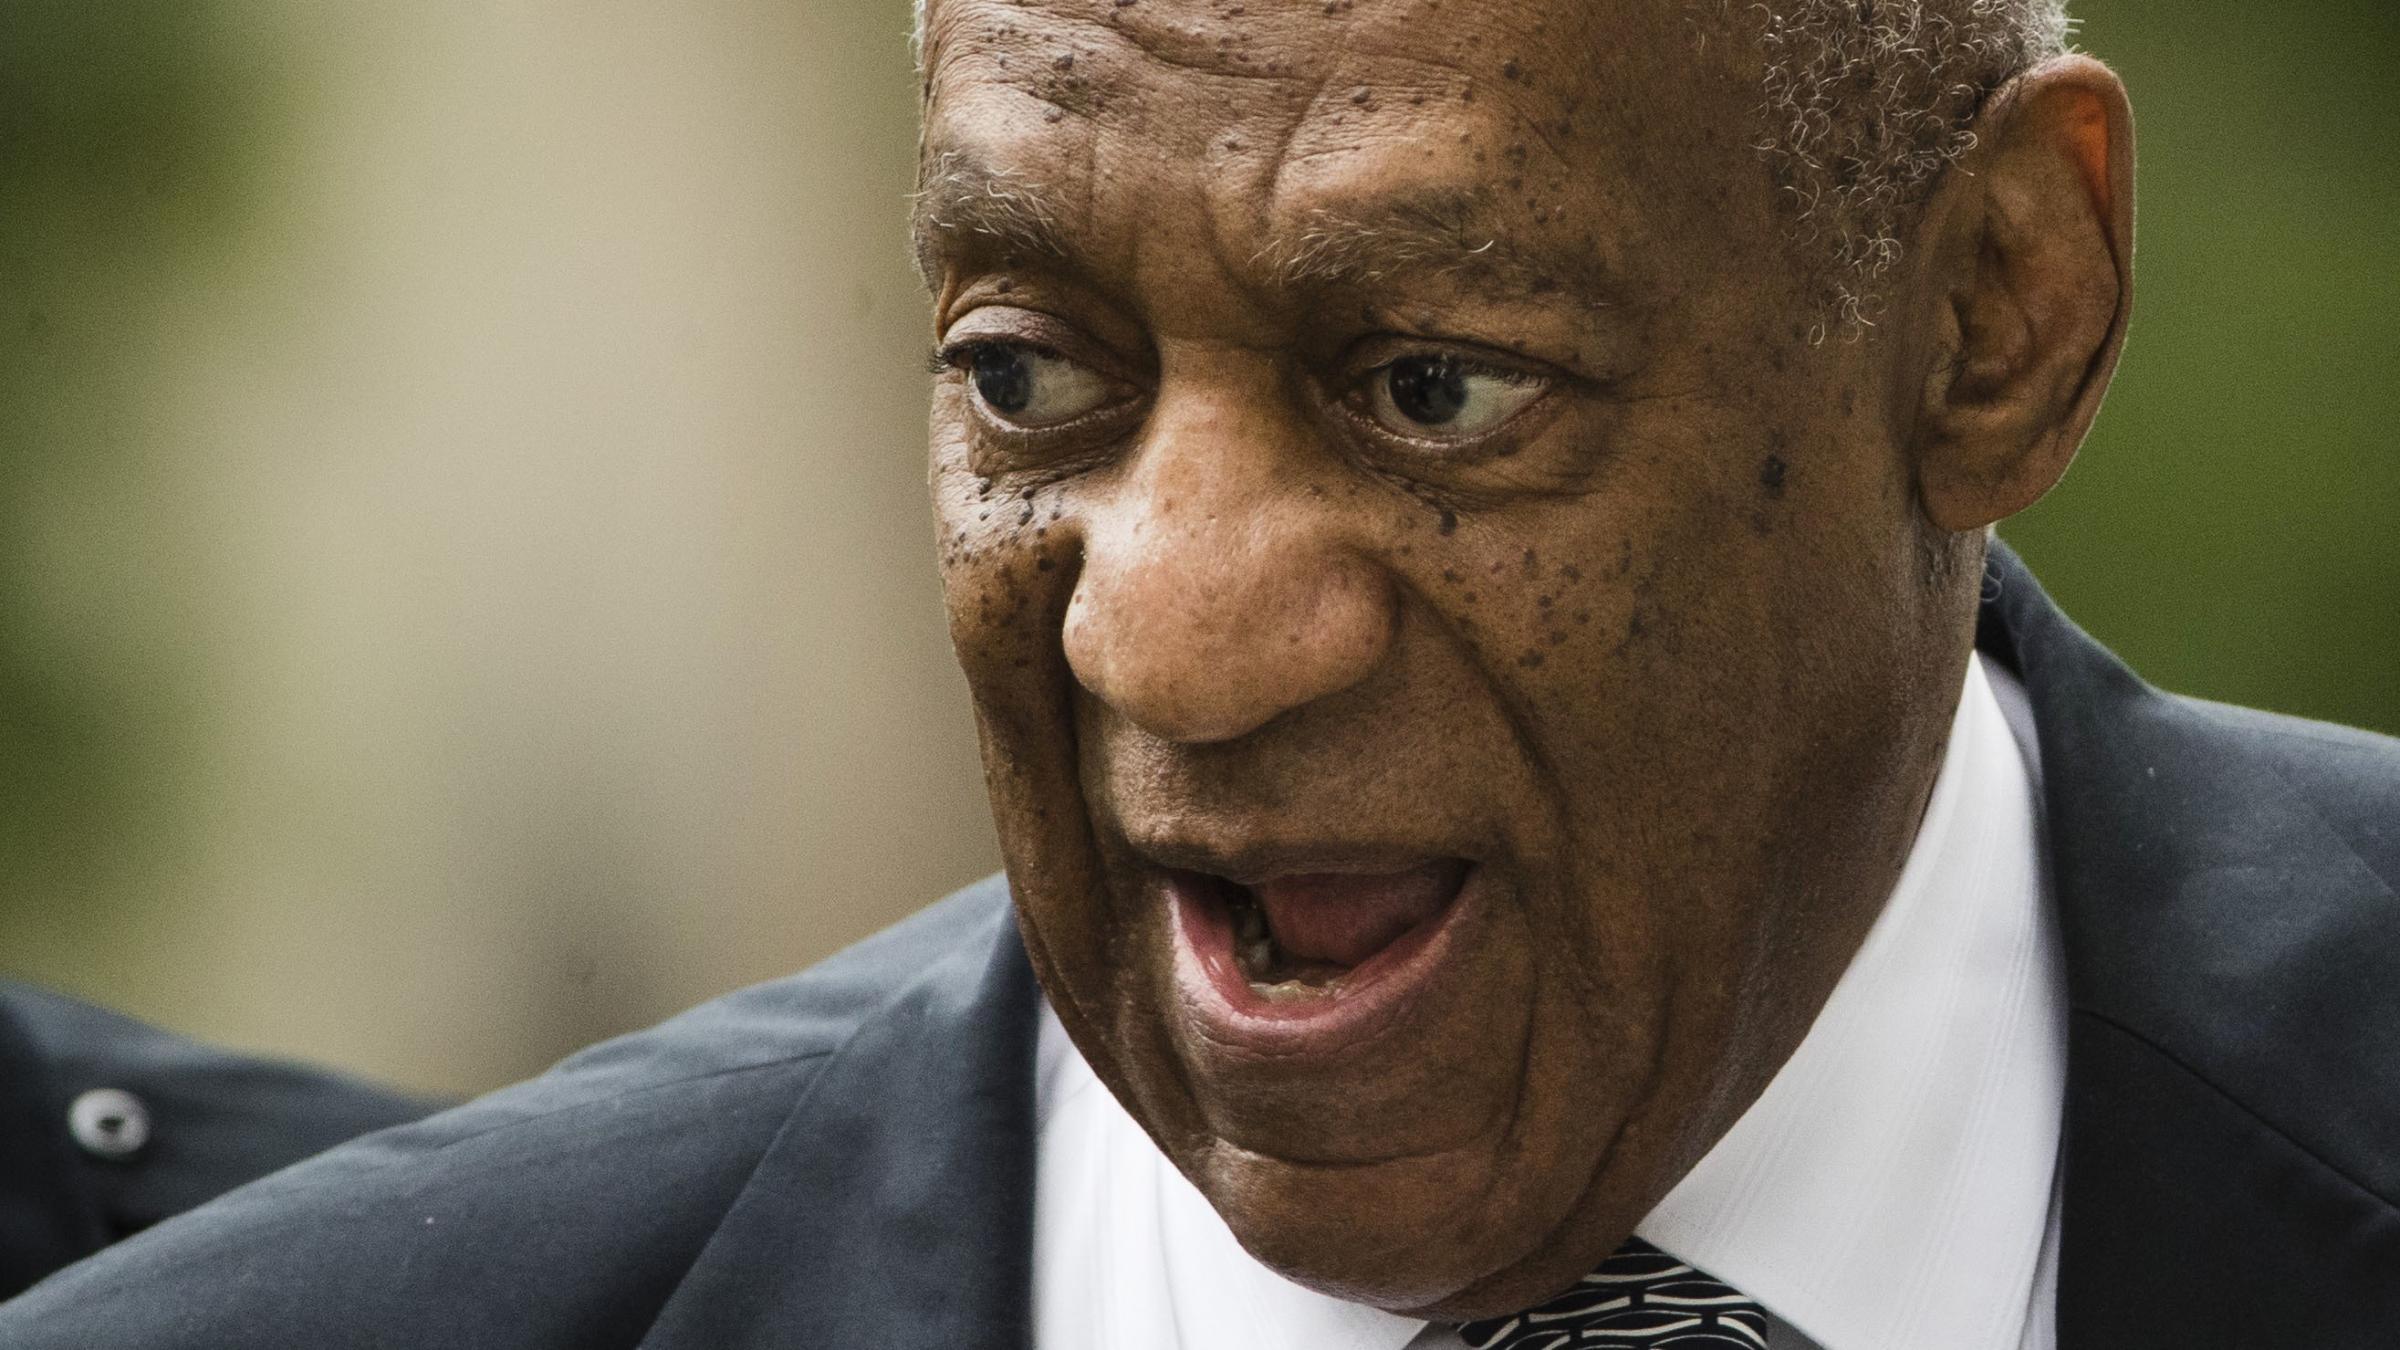 Cosby jury ends 4th day with no verdict